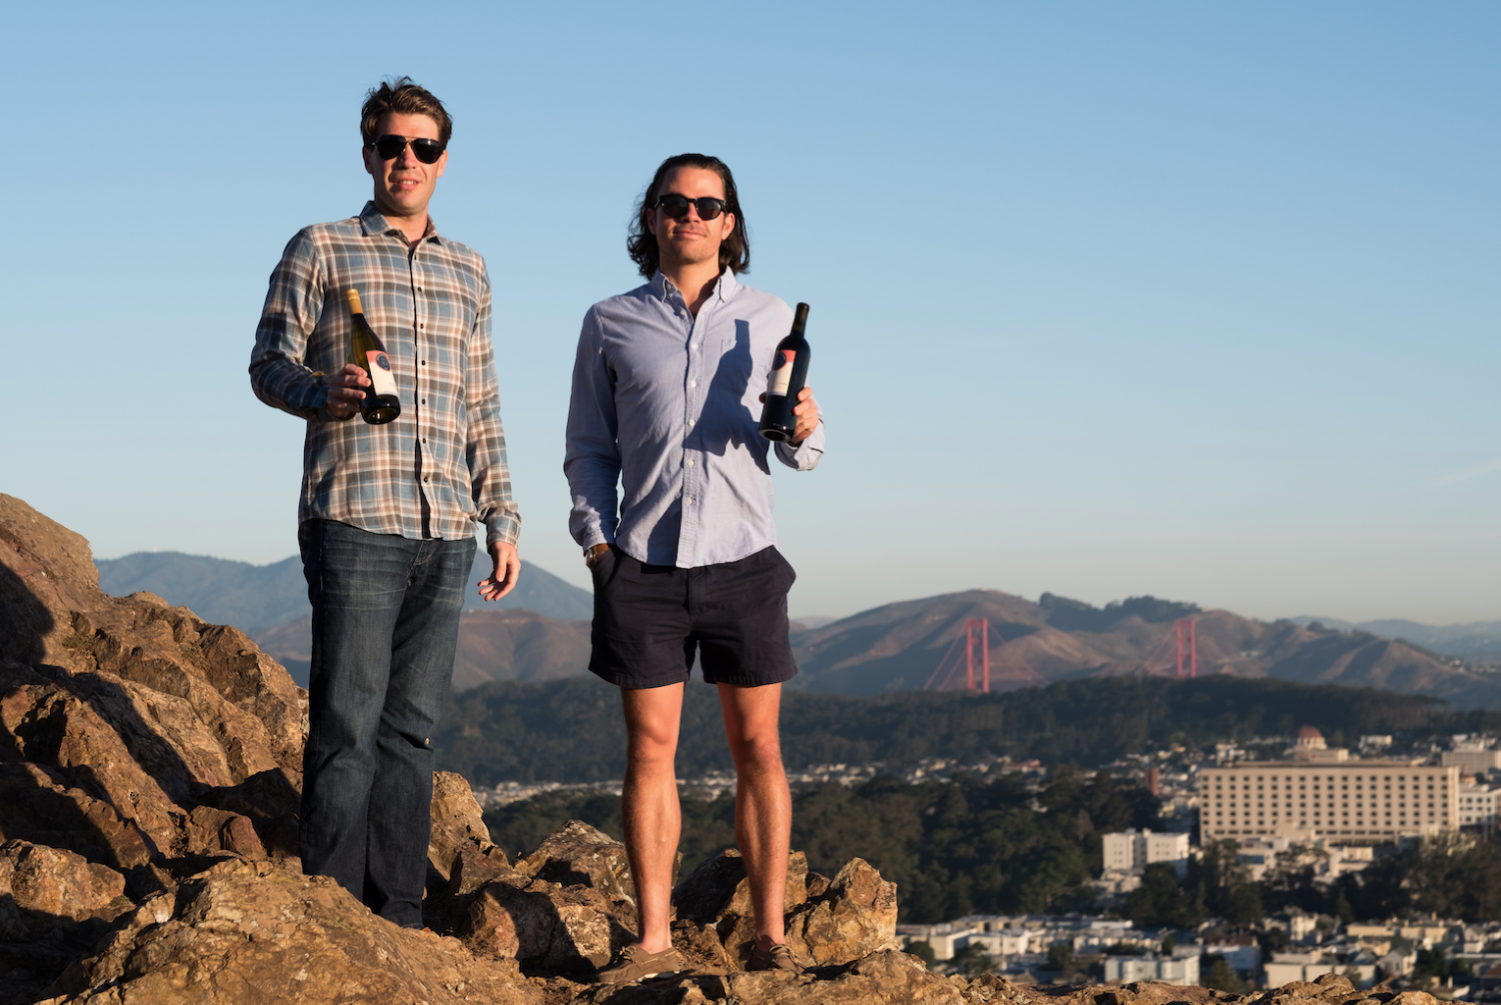 Founder and CEO Luc Bergevin (right), along with Chief Wine Officer and co-founder Martin Sheehan-Stross (left) started Foot of the Bed Wine Cellar in 2016 as a way to highlight Californian wines and share them with members.